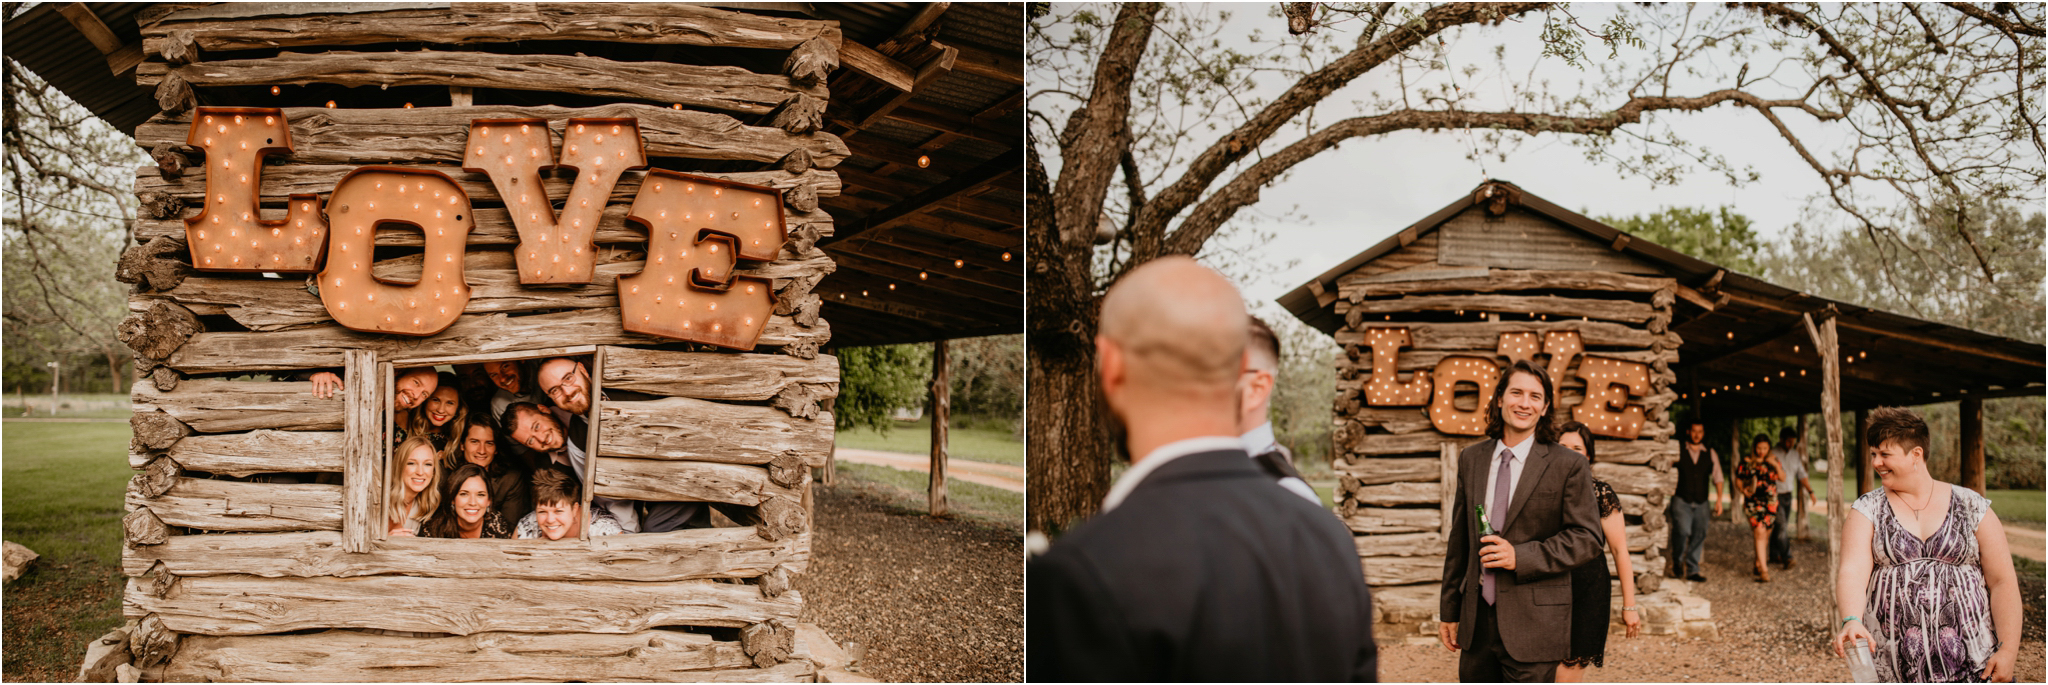 jillian-and-scott-pecan-springs-ranch-texas-and-washington-wedding-photographer-119.jpg